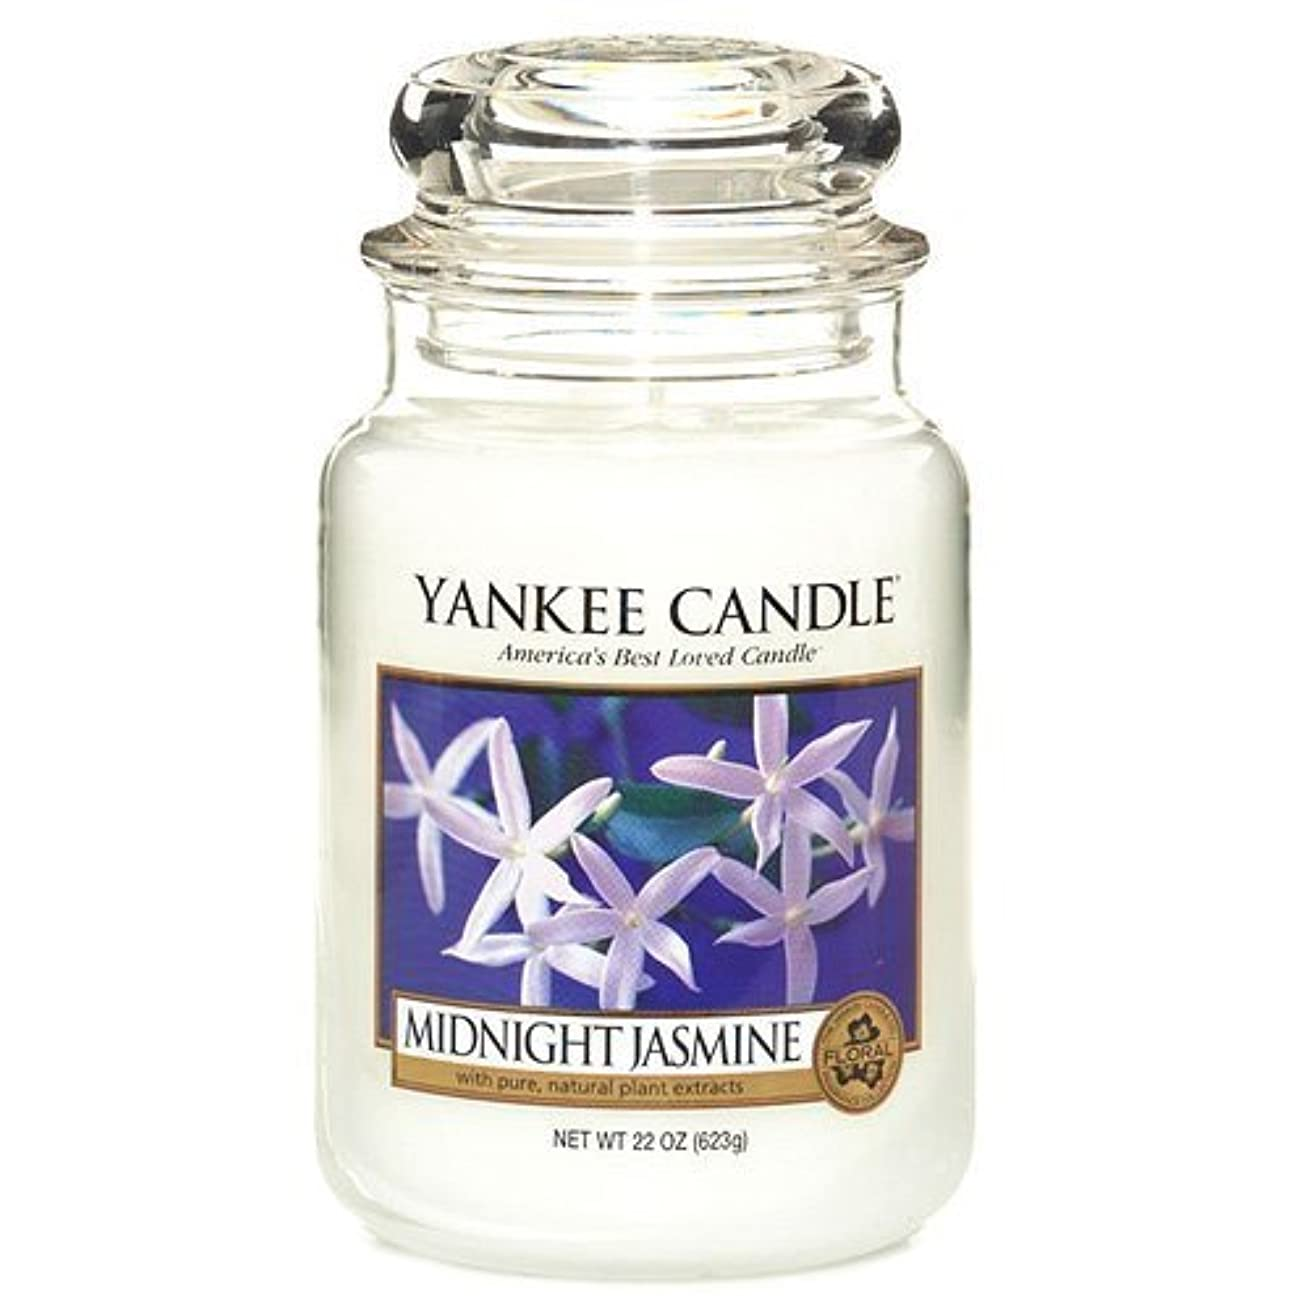 信頼年金船乗りYankee Candle Housewarmer Jar (Midnight Jasmine) - Large (22 oz) by Yankee Candle [並行輸入品]